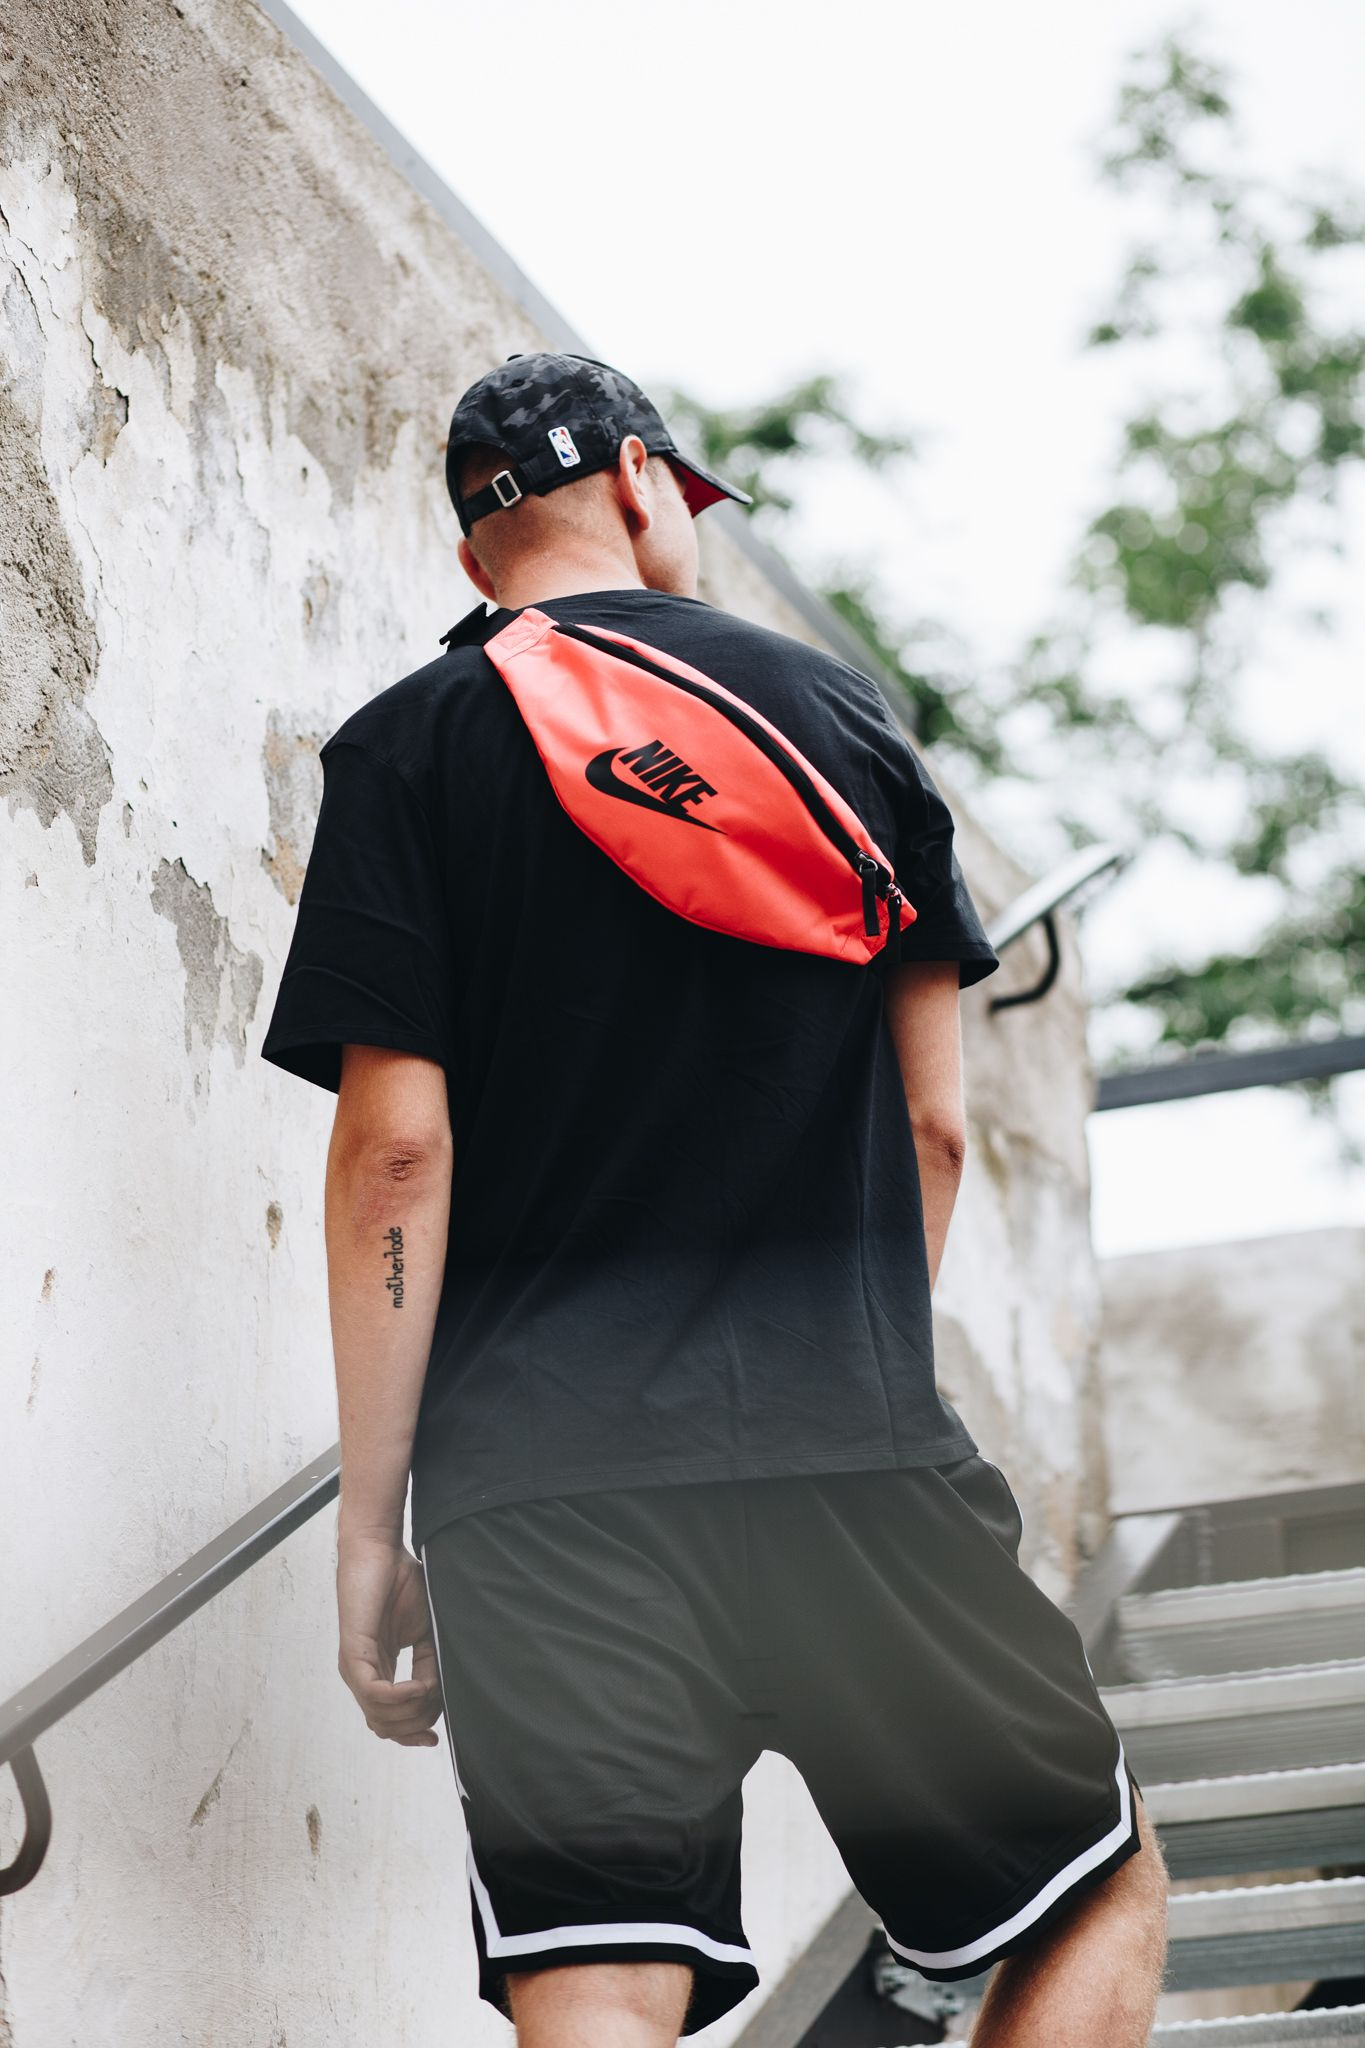 8d7e498a1950 The Nike Sportswear Heritage Hip Pack lets you easily access and carry your  gear. Check out our selection of hip bags   fanny packs online.